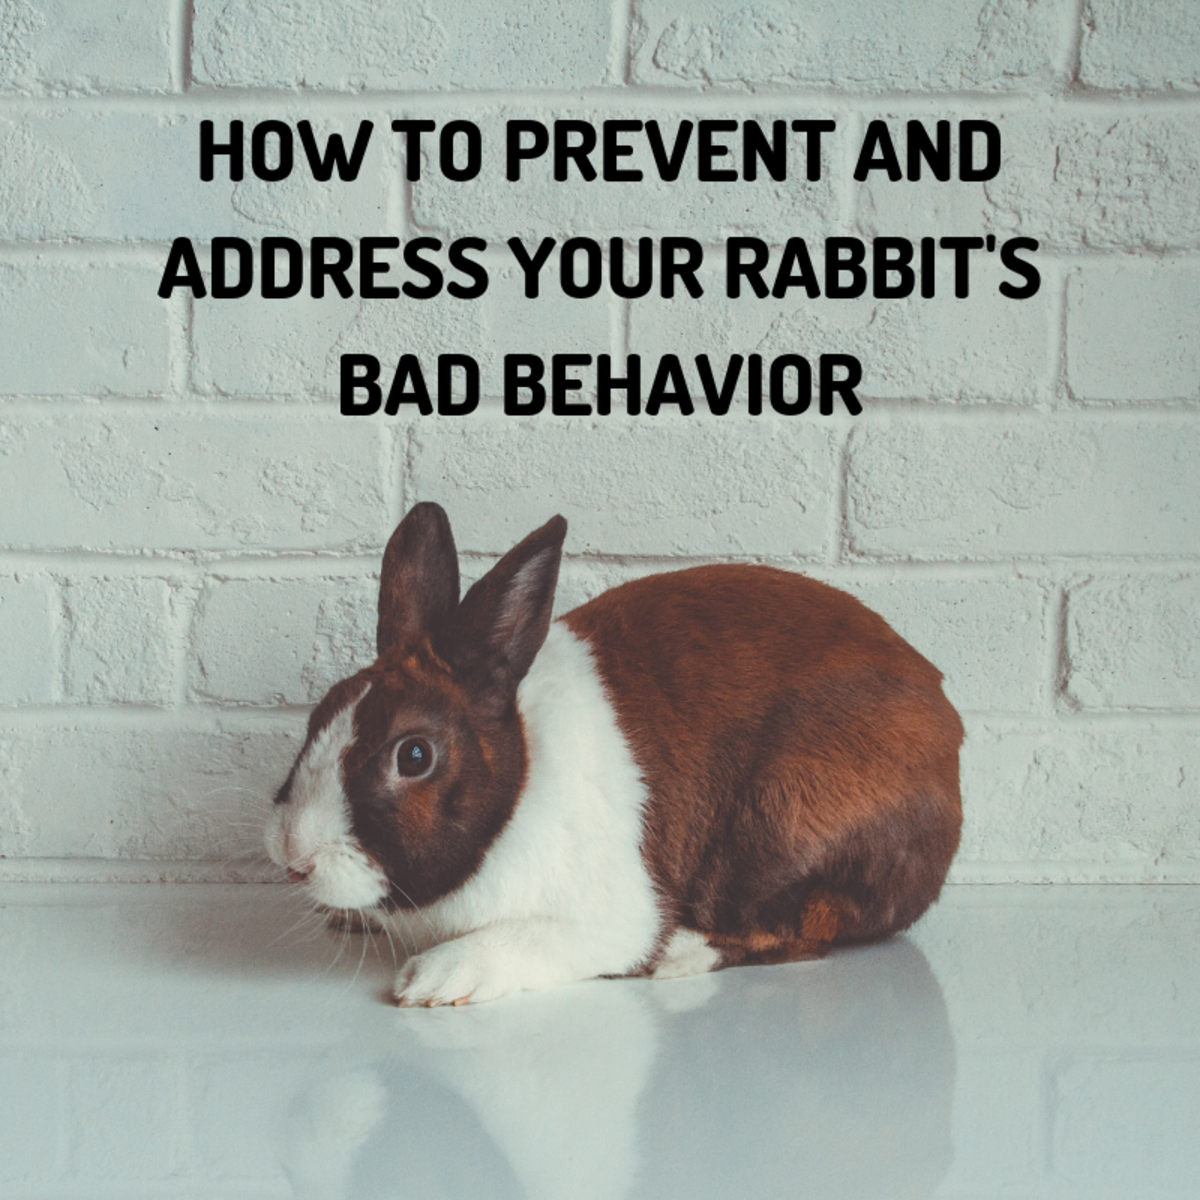 Bunnies and bad behavior go together like peanut butter and jelly. Here's what you can do to minimize their misbehavior.